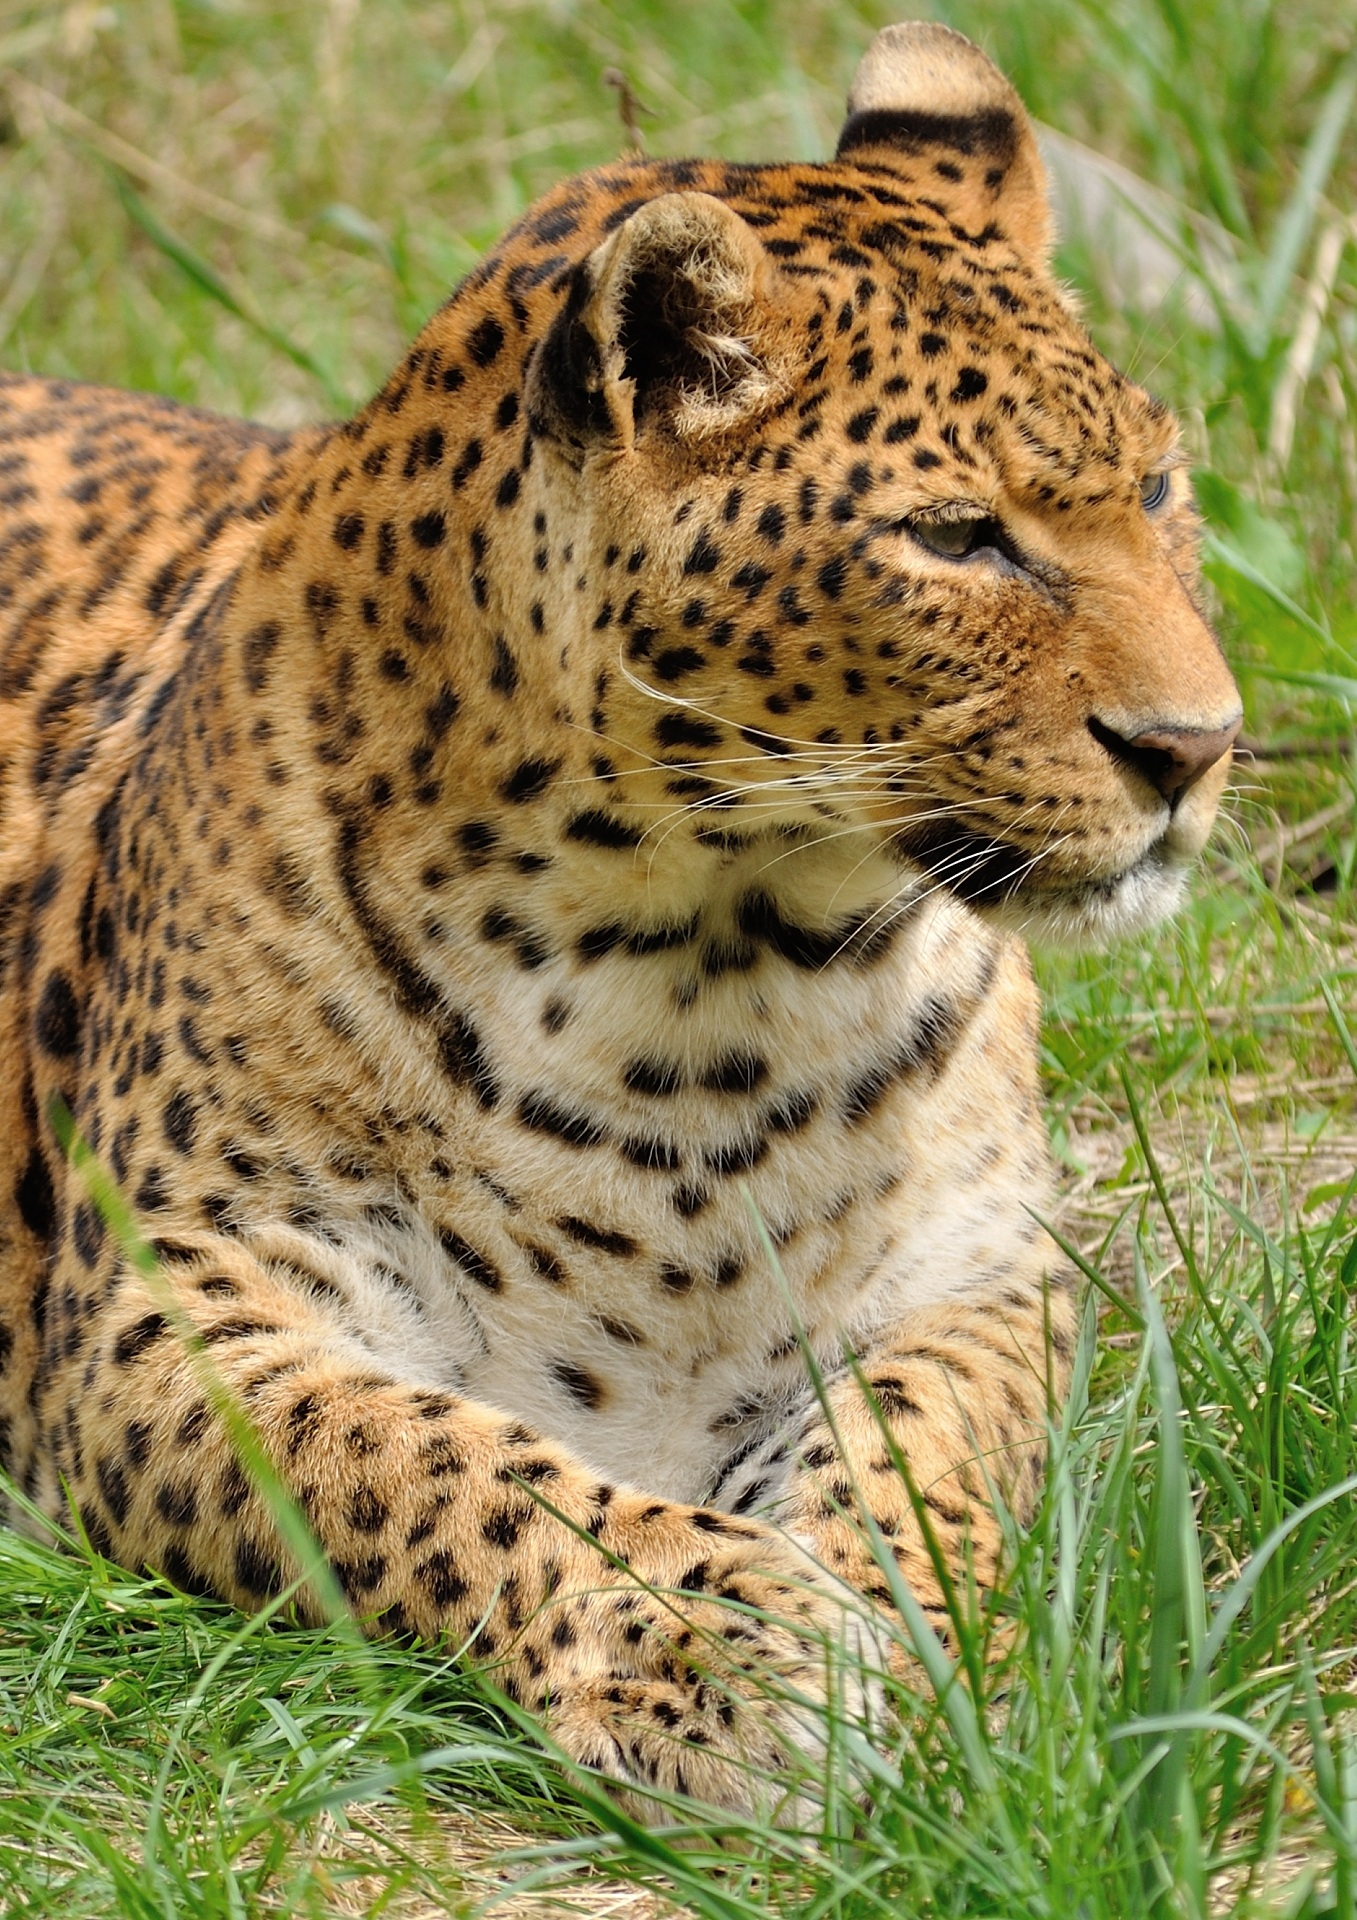 Cool Hd Wallpapers For Mobile Leopard Lying In The Grass 183 Free Stock Photo